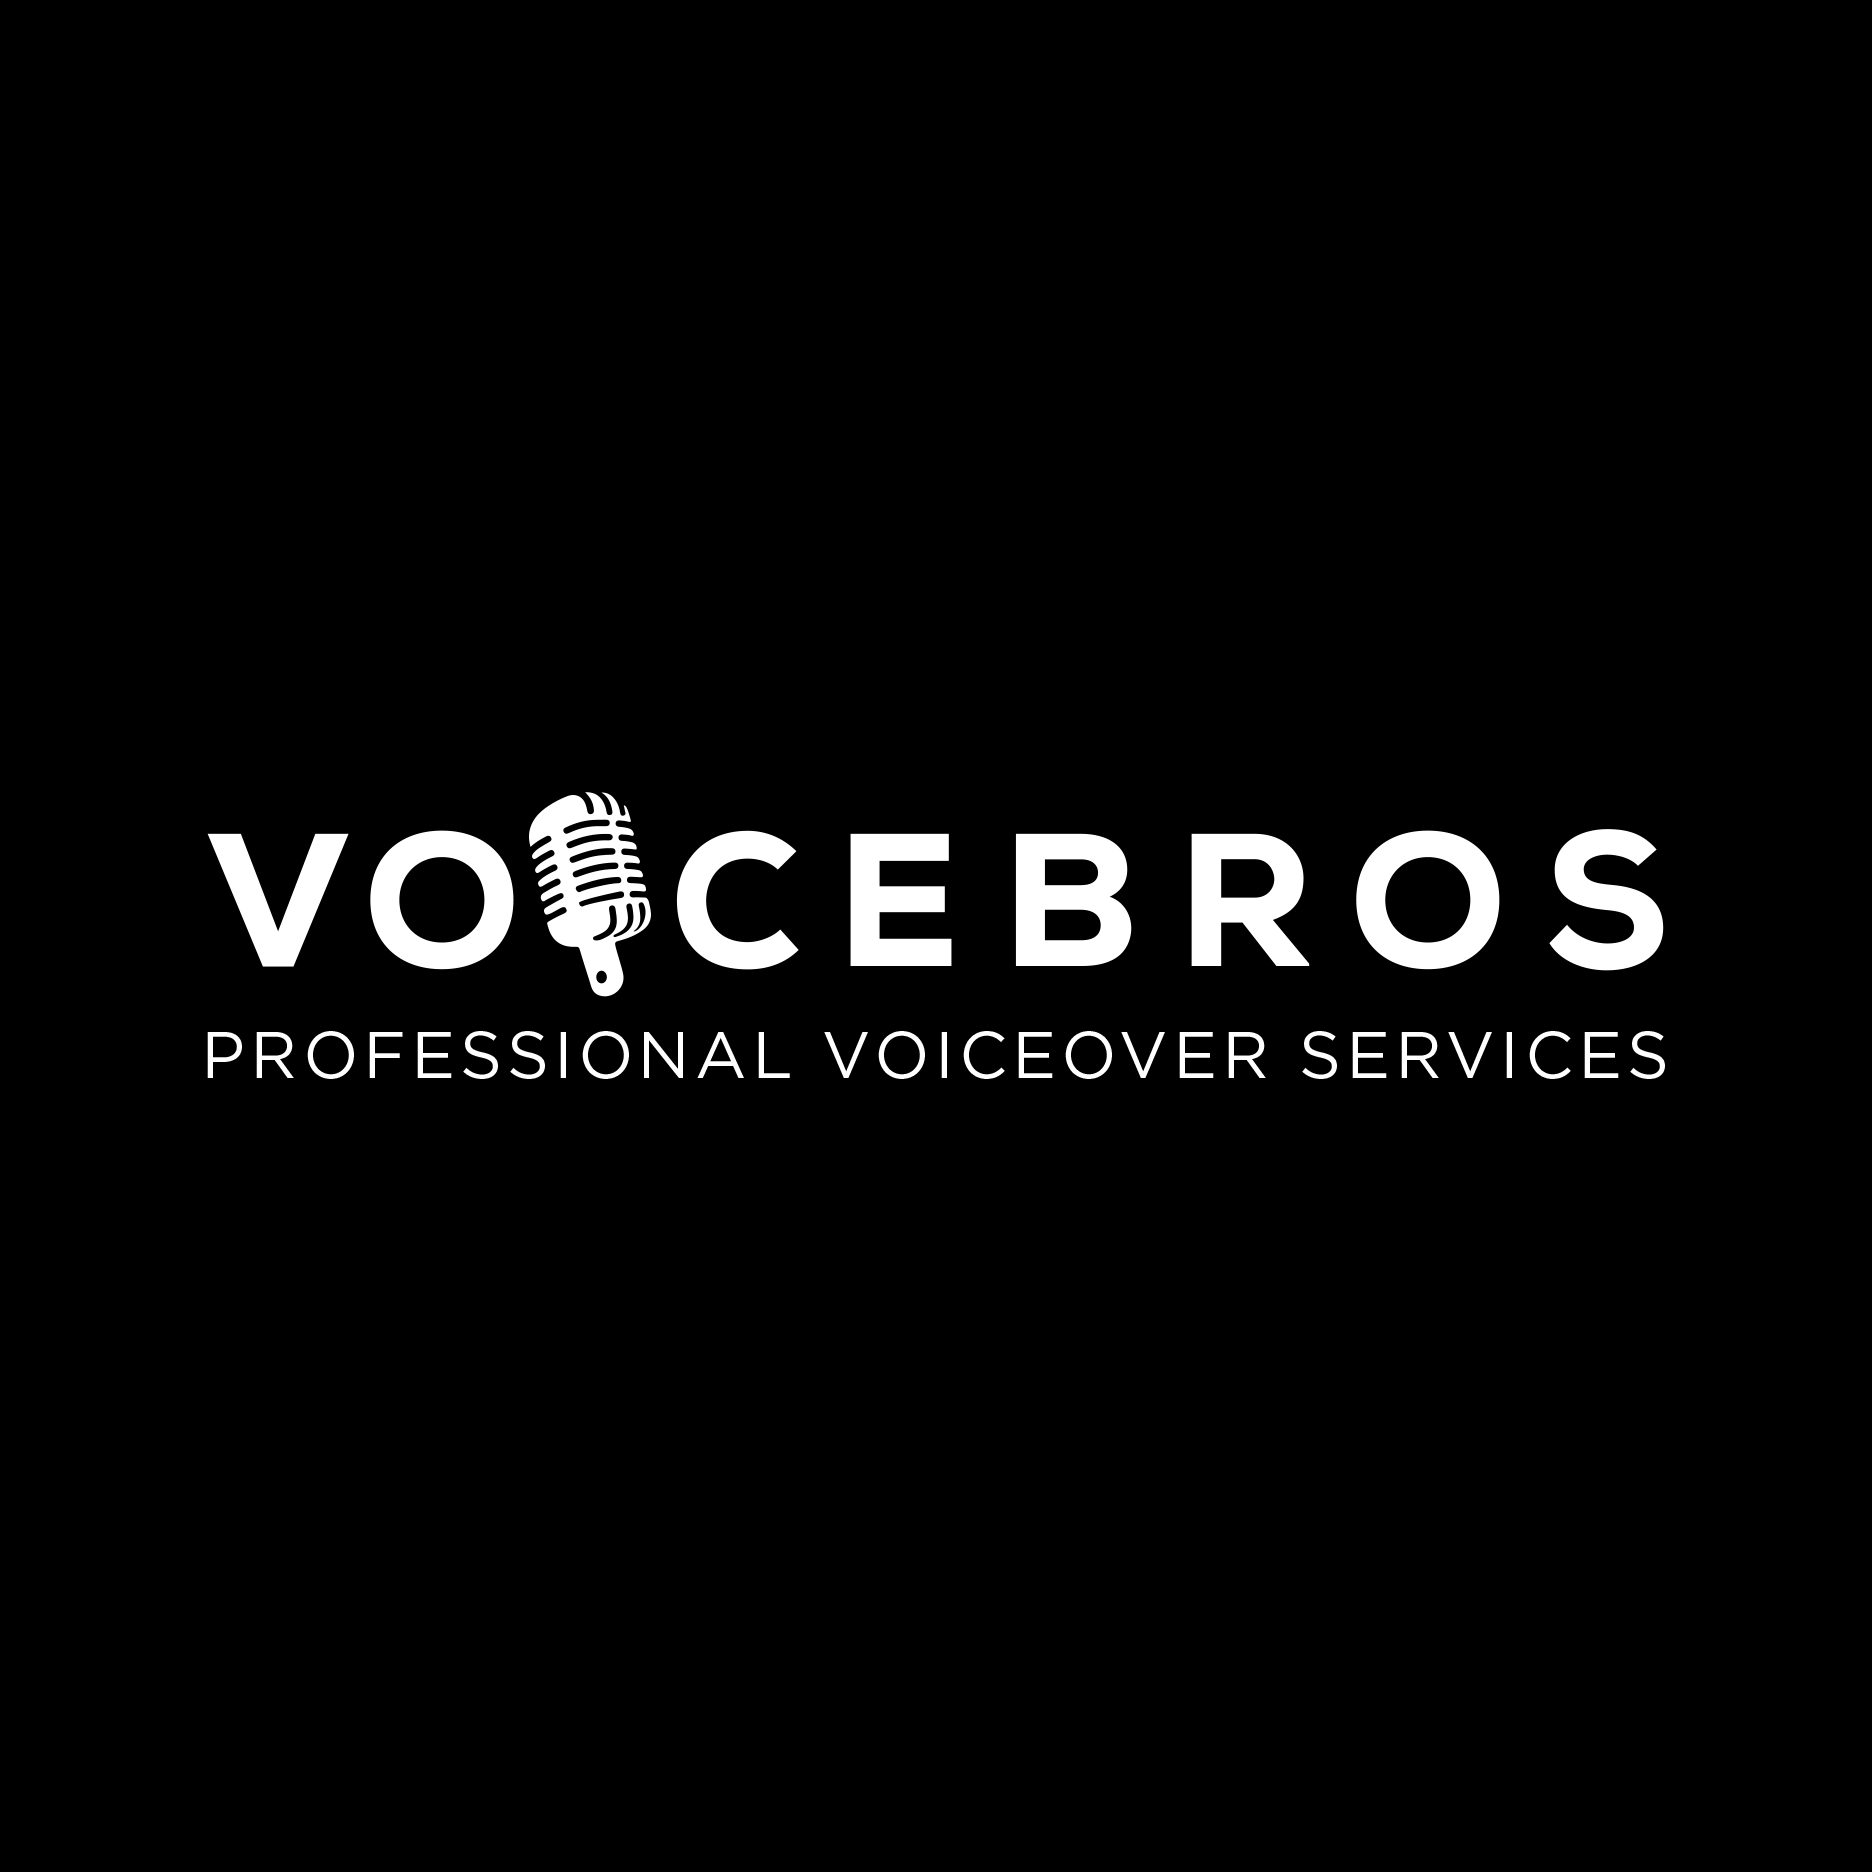 Anne gallien is a voice over actor